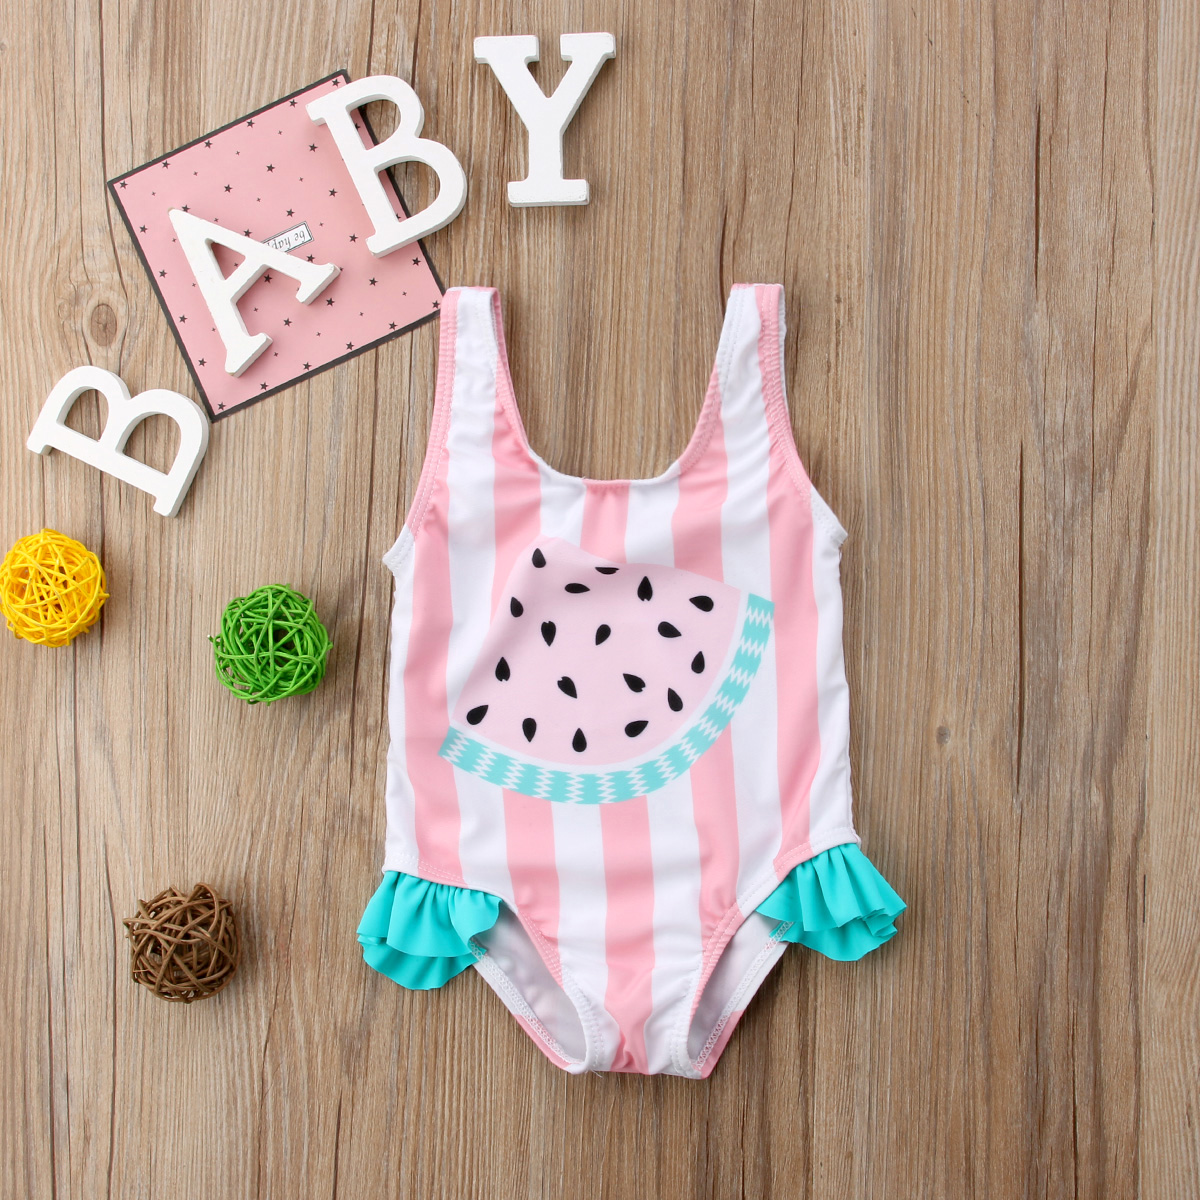 Pudcoco Newest Fashion Newborn Baby Girl Swimwear Watermelon Striped Swimsuit Swimming One-Piece Bikini